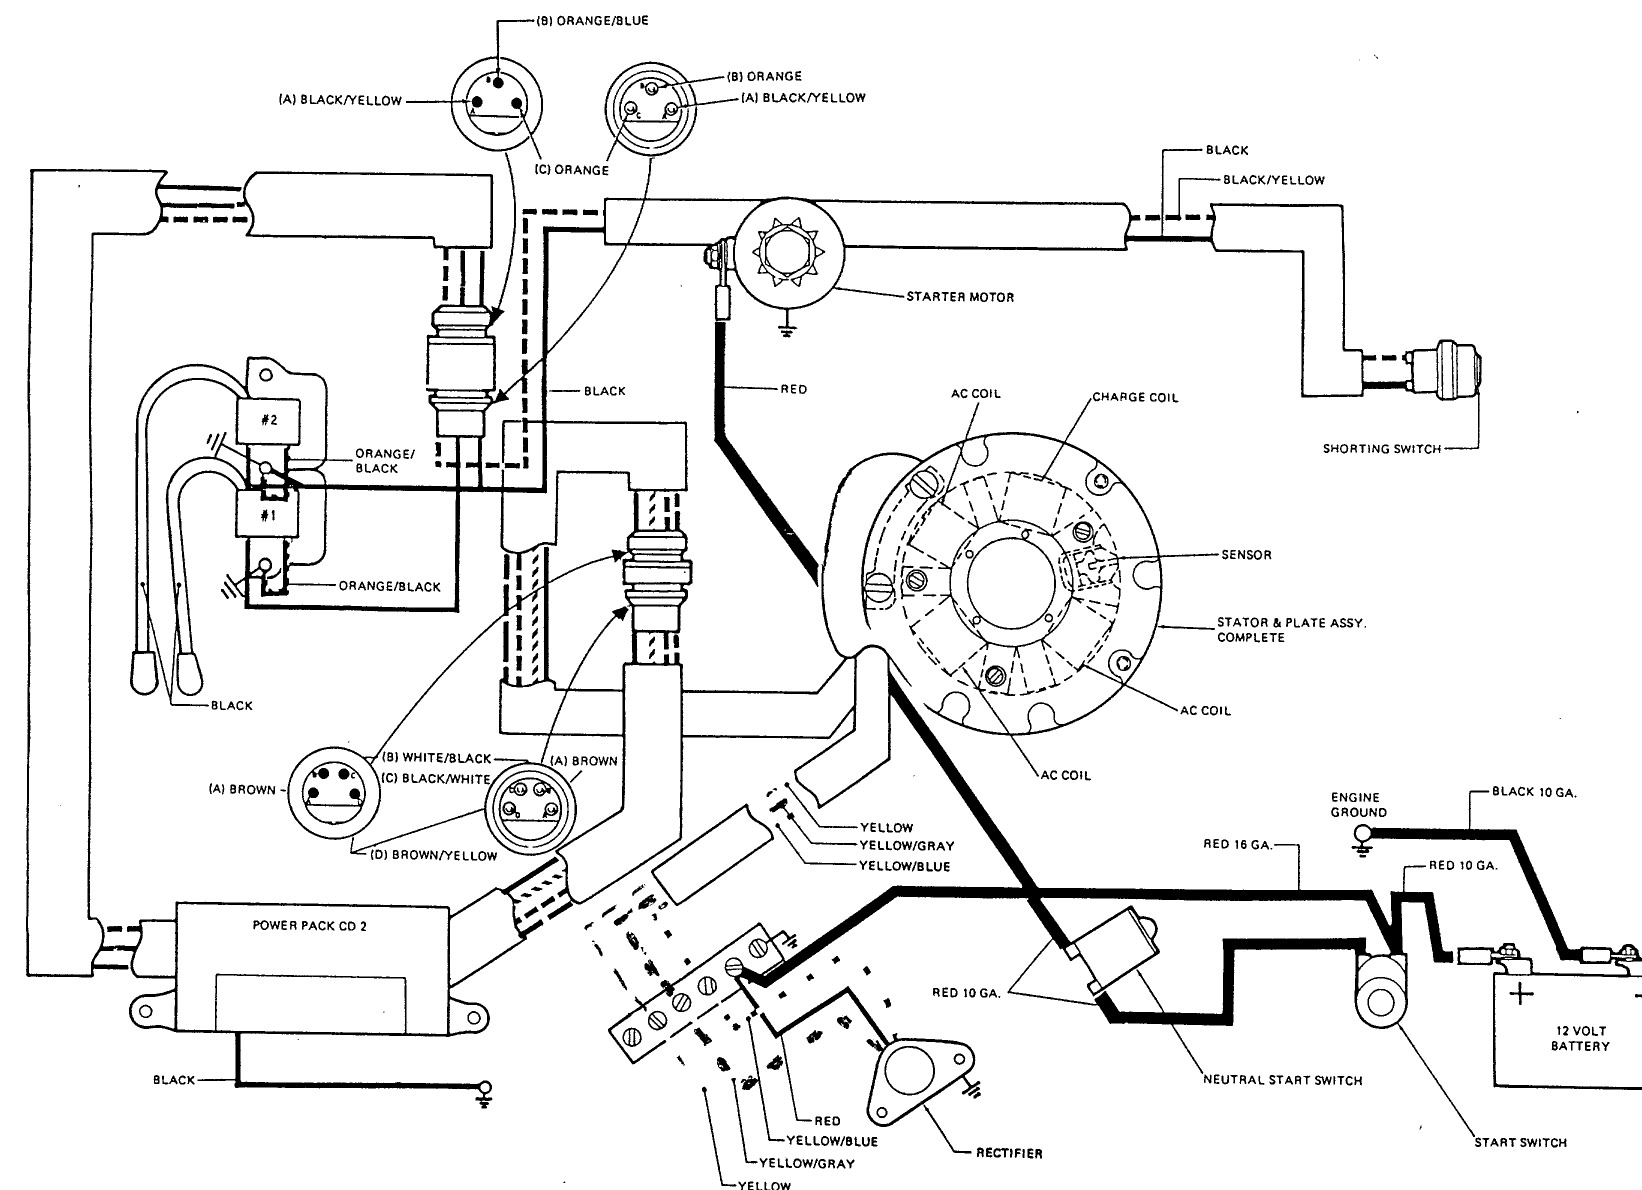 Maintaining Johnson Evinrude 9 Diagram As Well Push Button Start Stop Switch Wiring On Electrical For Electric Starter Motor Click The Above Thumbnails Larger Picture